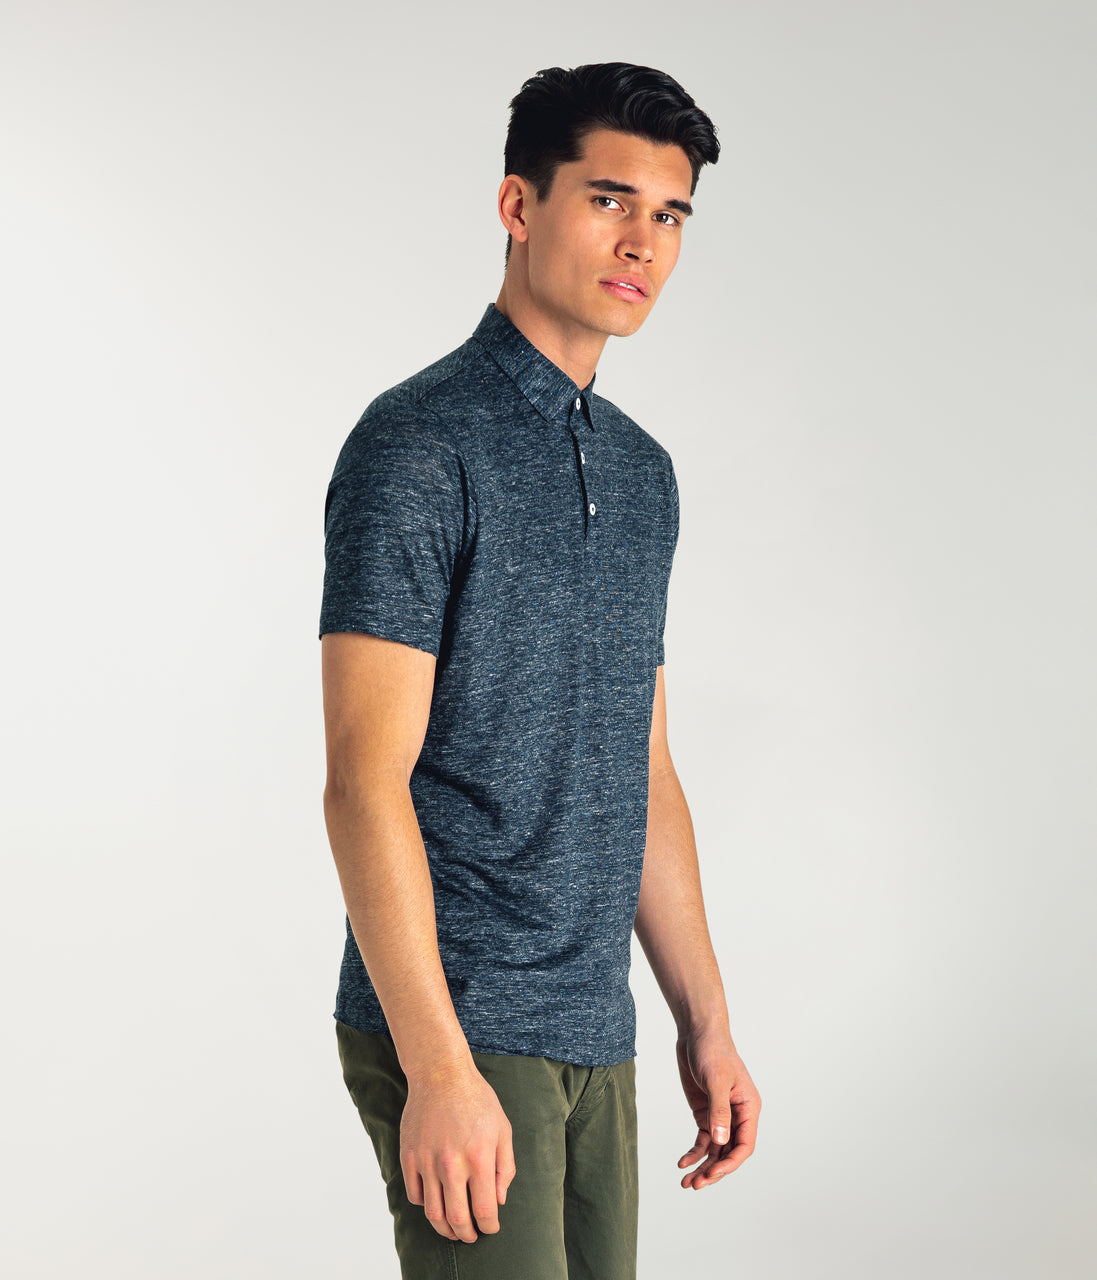 Linen Heather Polo - Navy Heather - Good Man Brand - Linen Heather Polo - Navy Heather